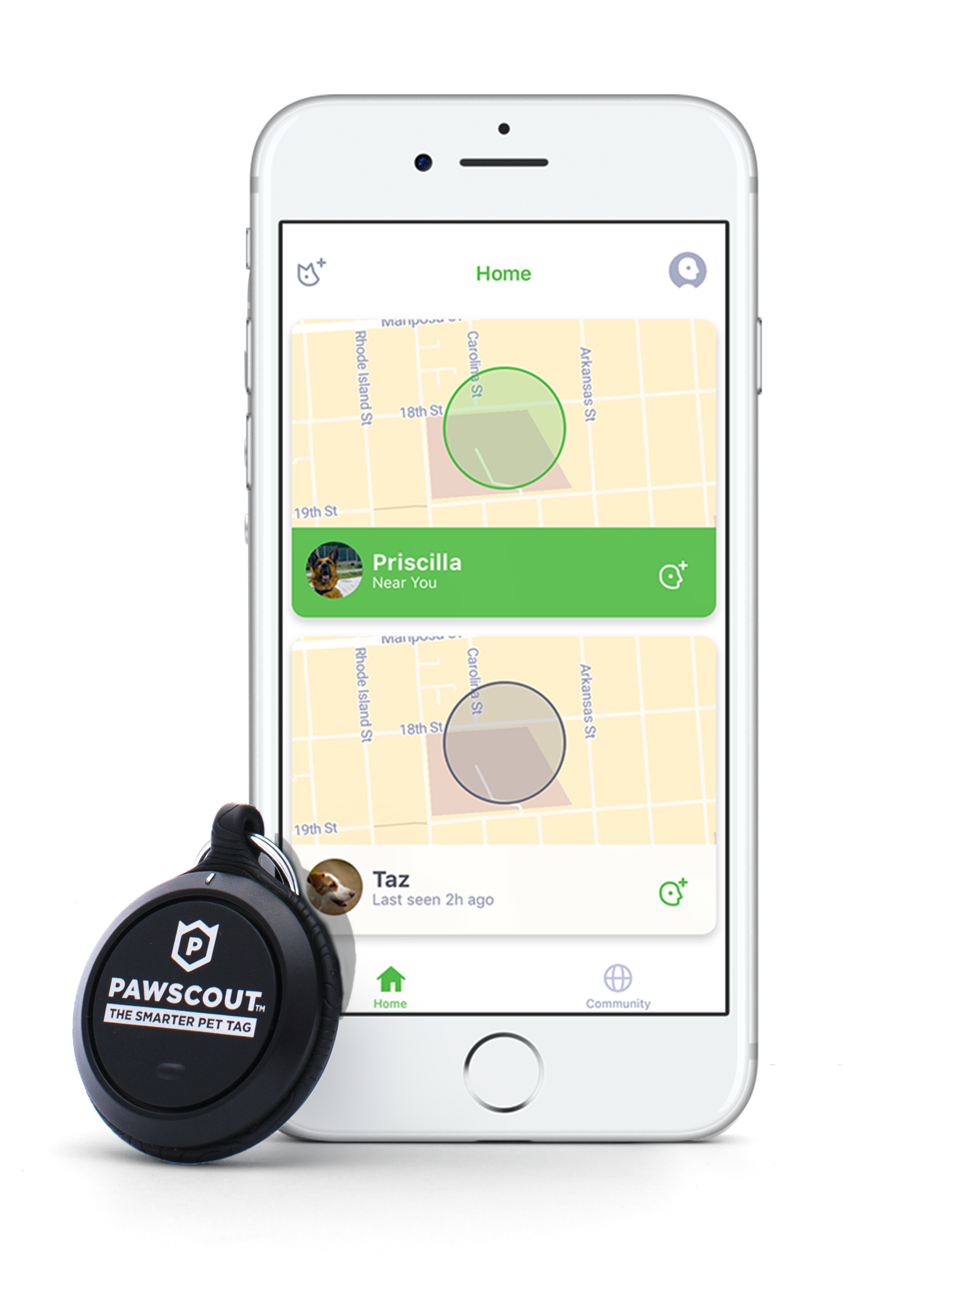 The Pawscout Smarter Pet Tag could save your pet's life.